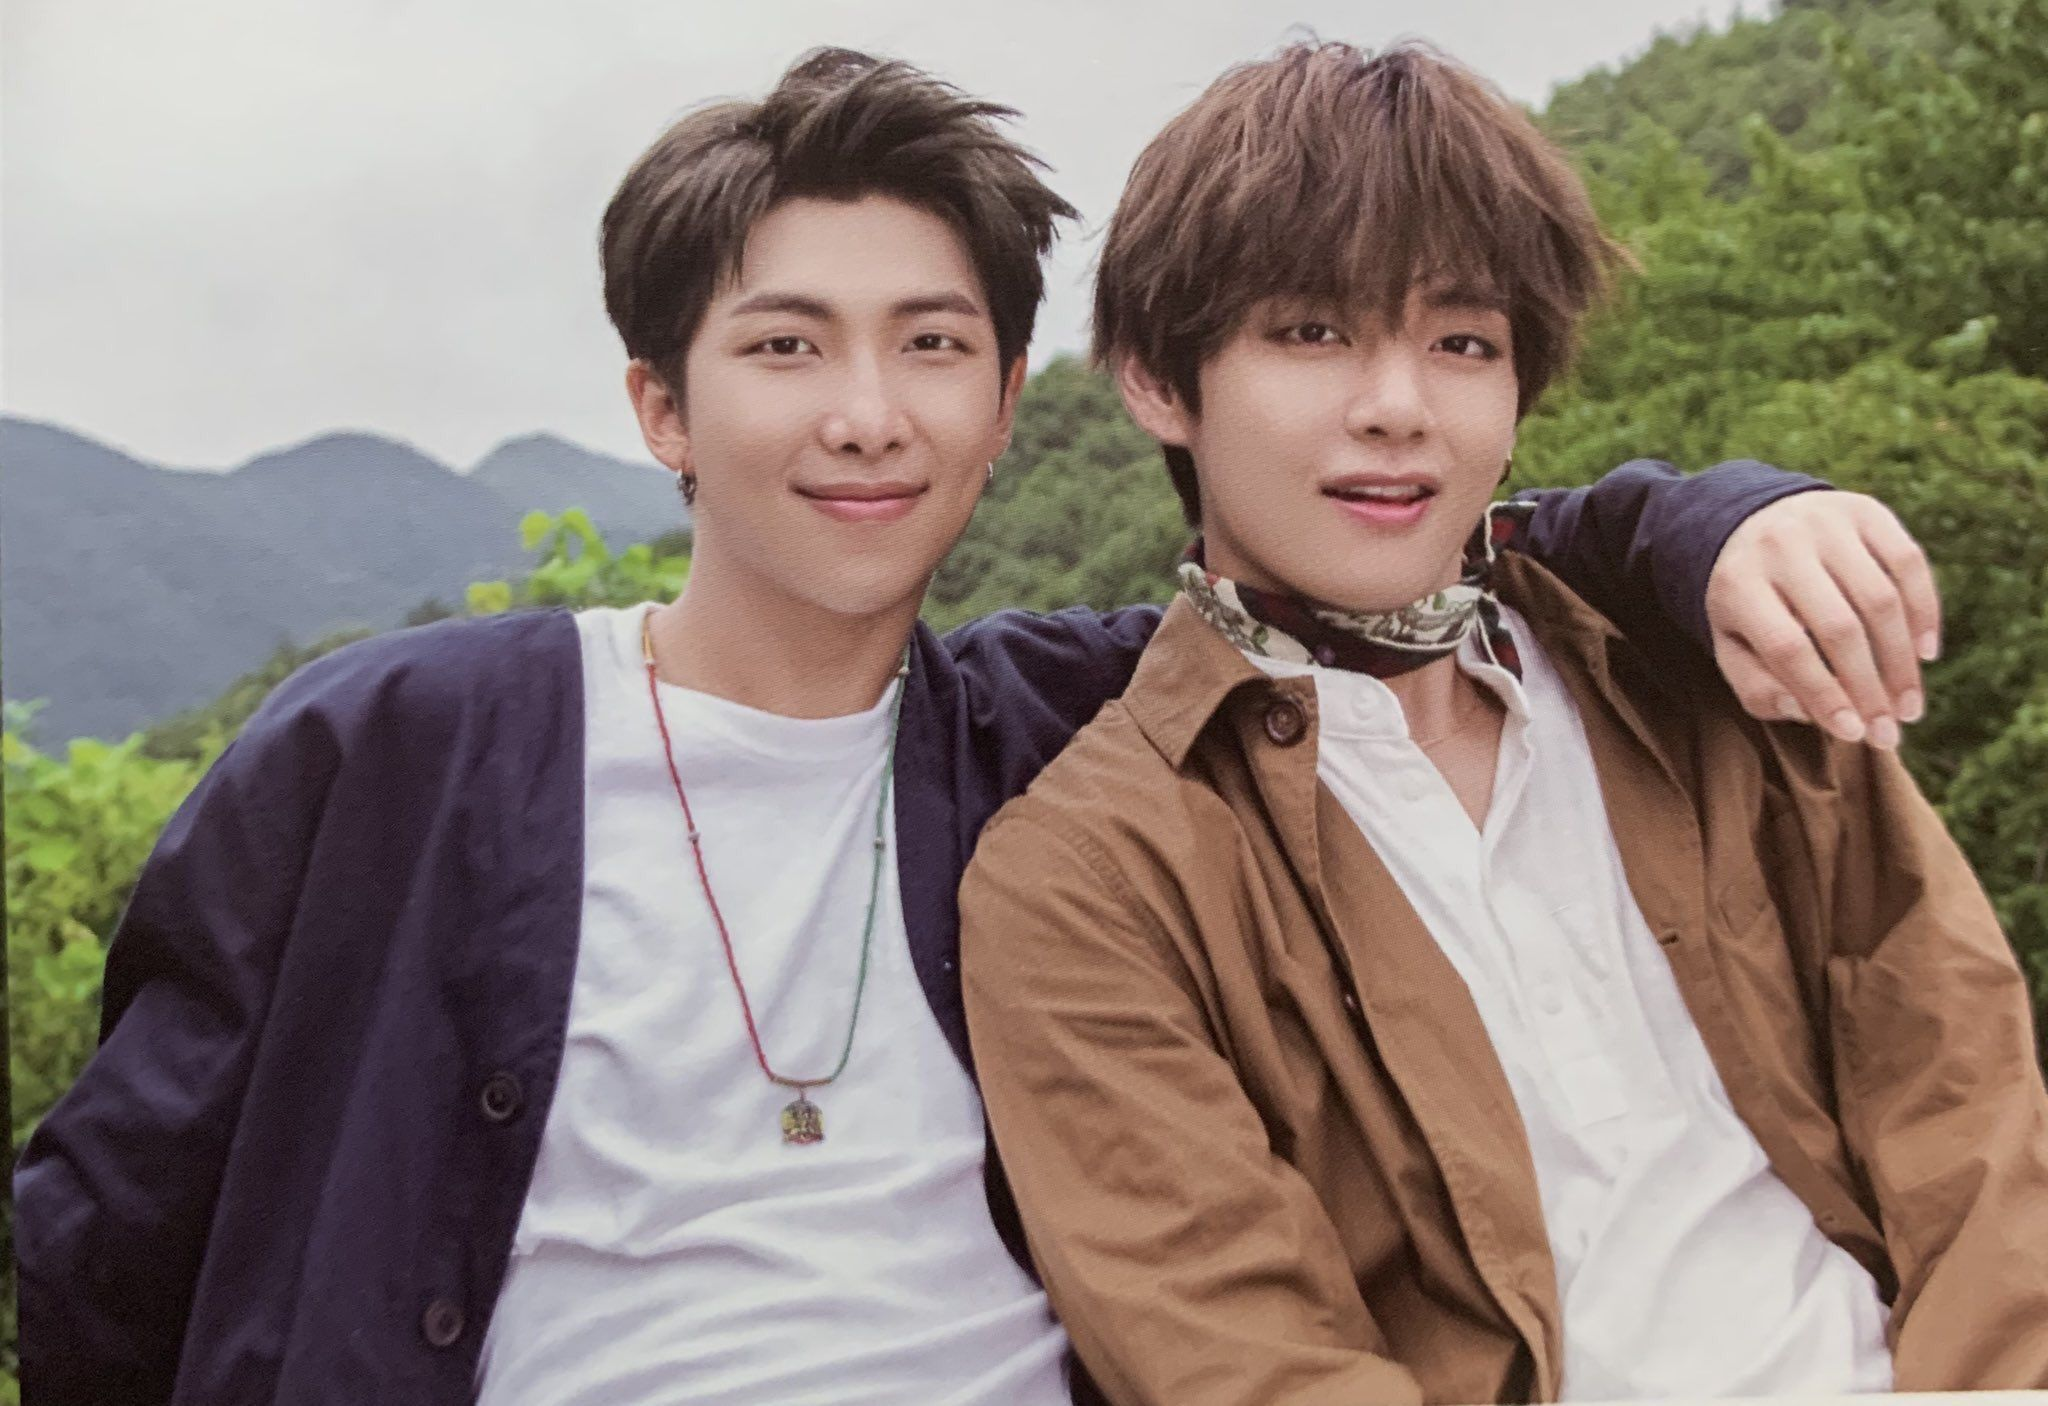 Rmpics On Twitter Bts Summer Package Summer Package 2019 Bts Taehyung Bts rm and v wallpaper